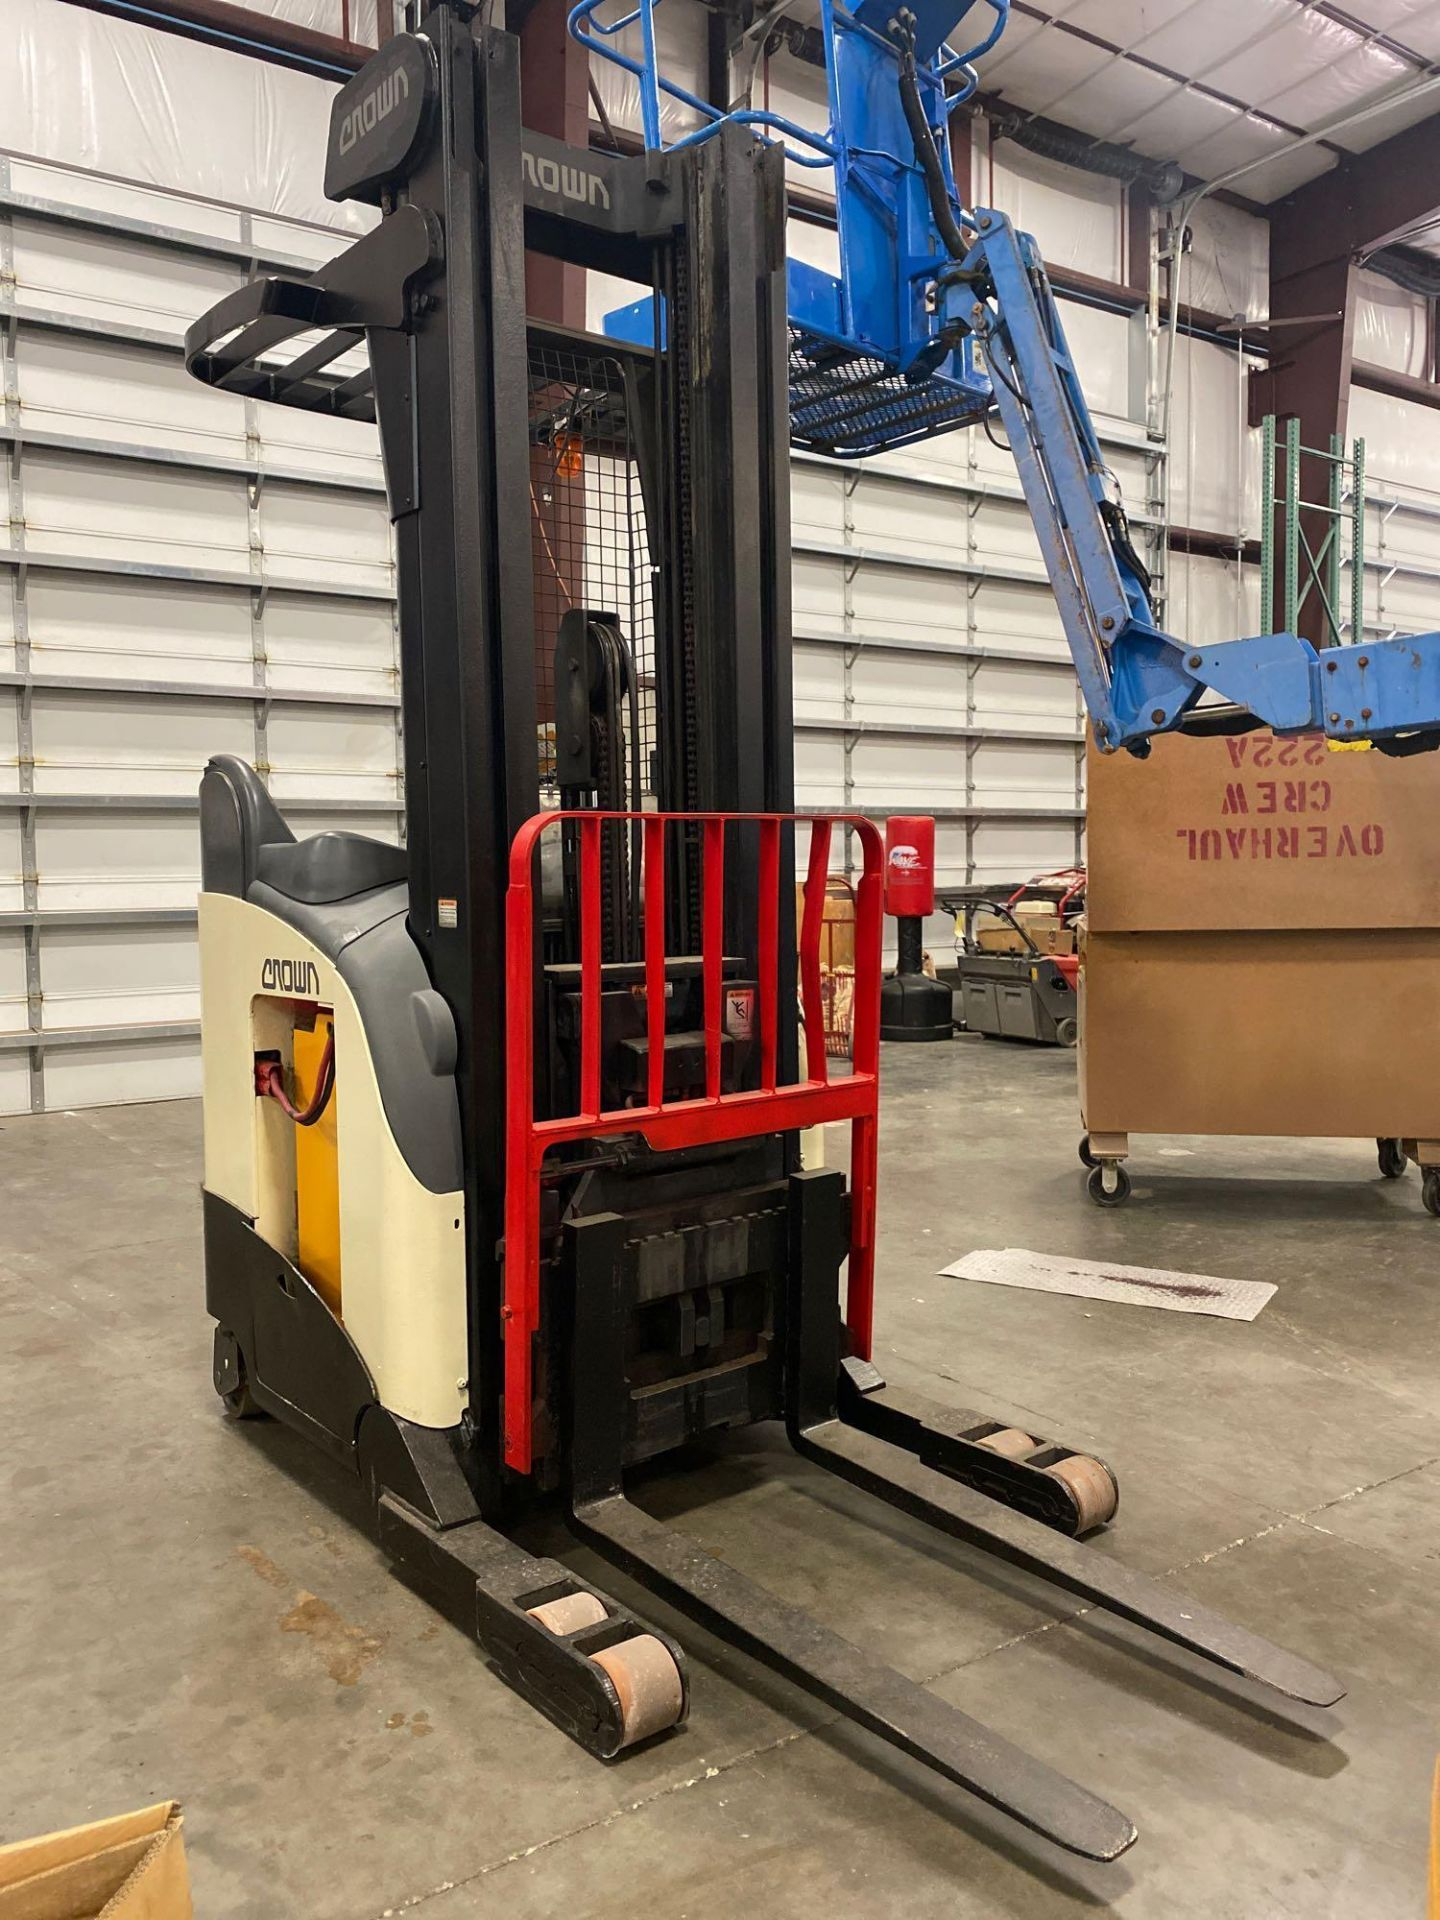 Lot 28A - CROWN ELECTRIC FORKLIFT MODEL RR5020-35, 36V, TILT, SIDE SHIFT, RUNS AND OPERATES